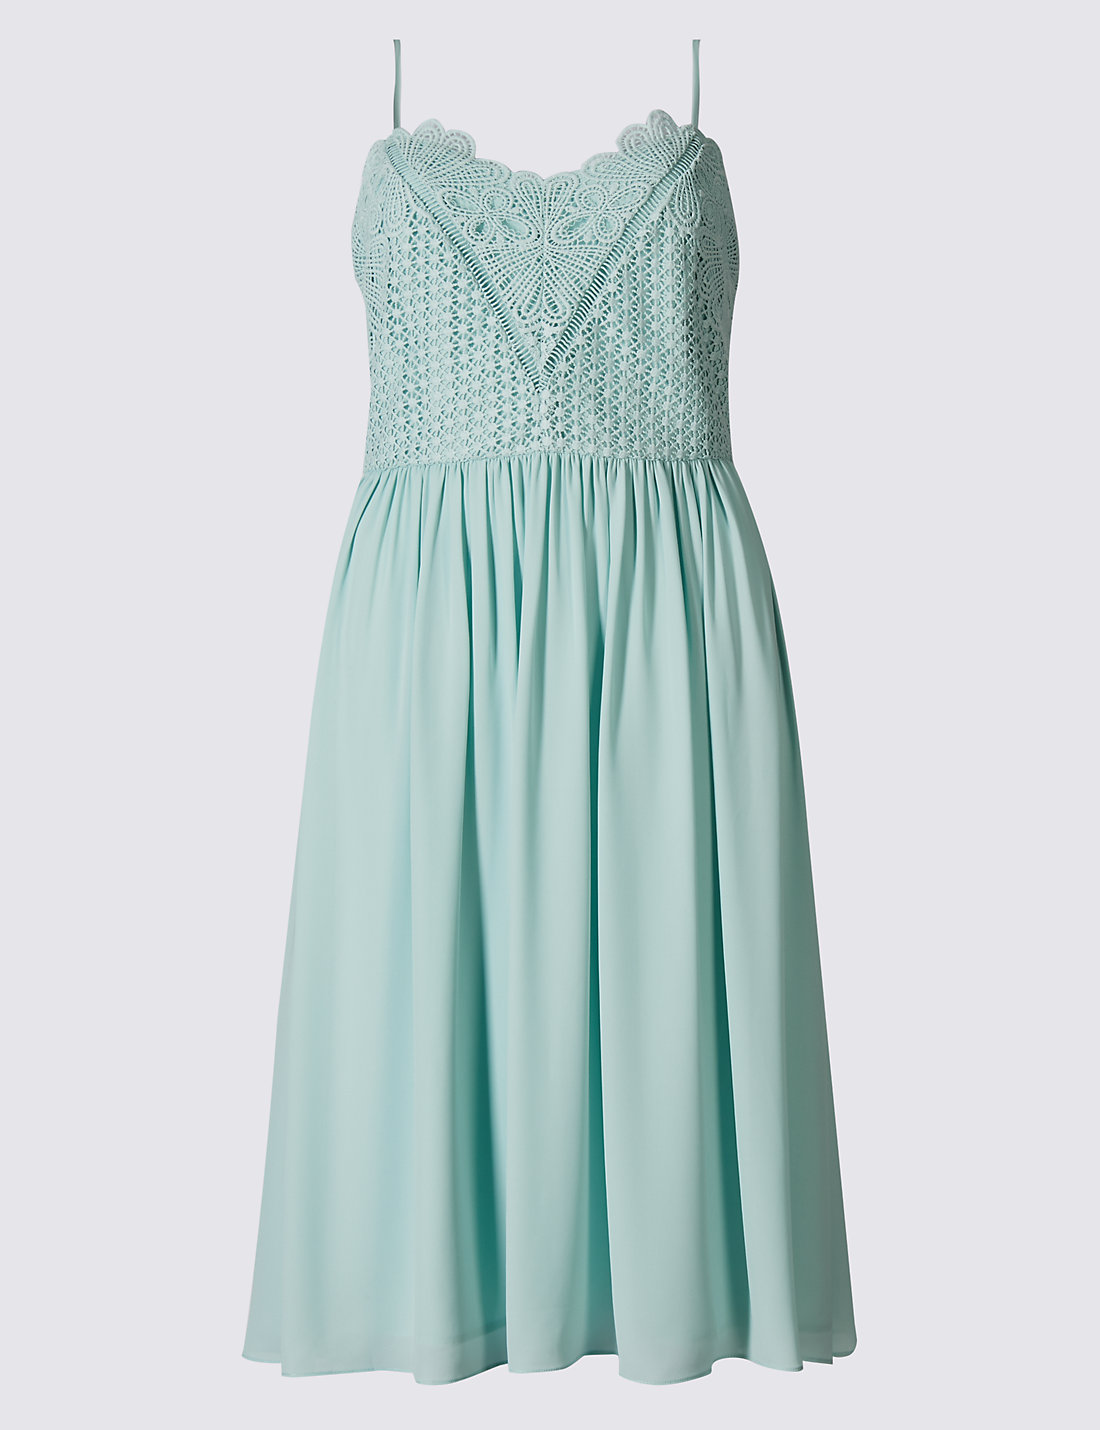 Marks and spencer green lace dress